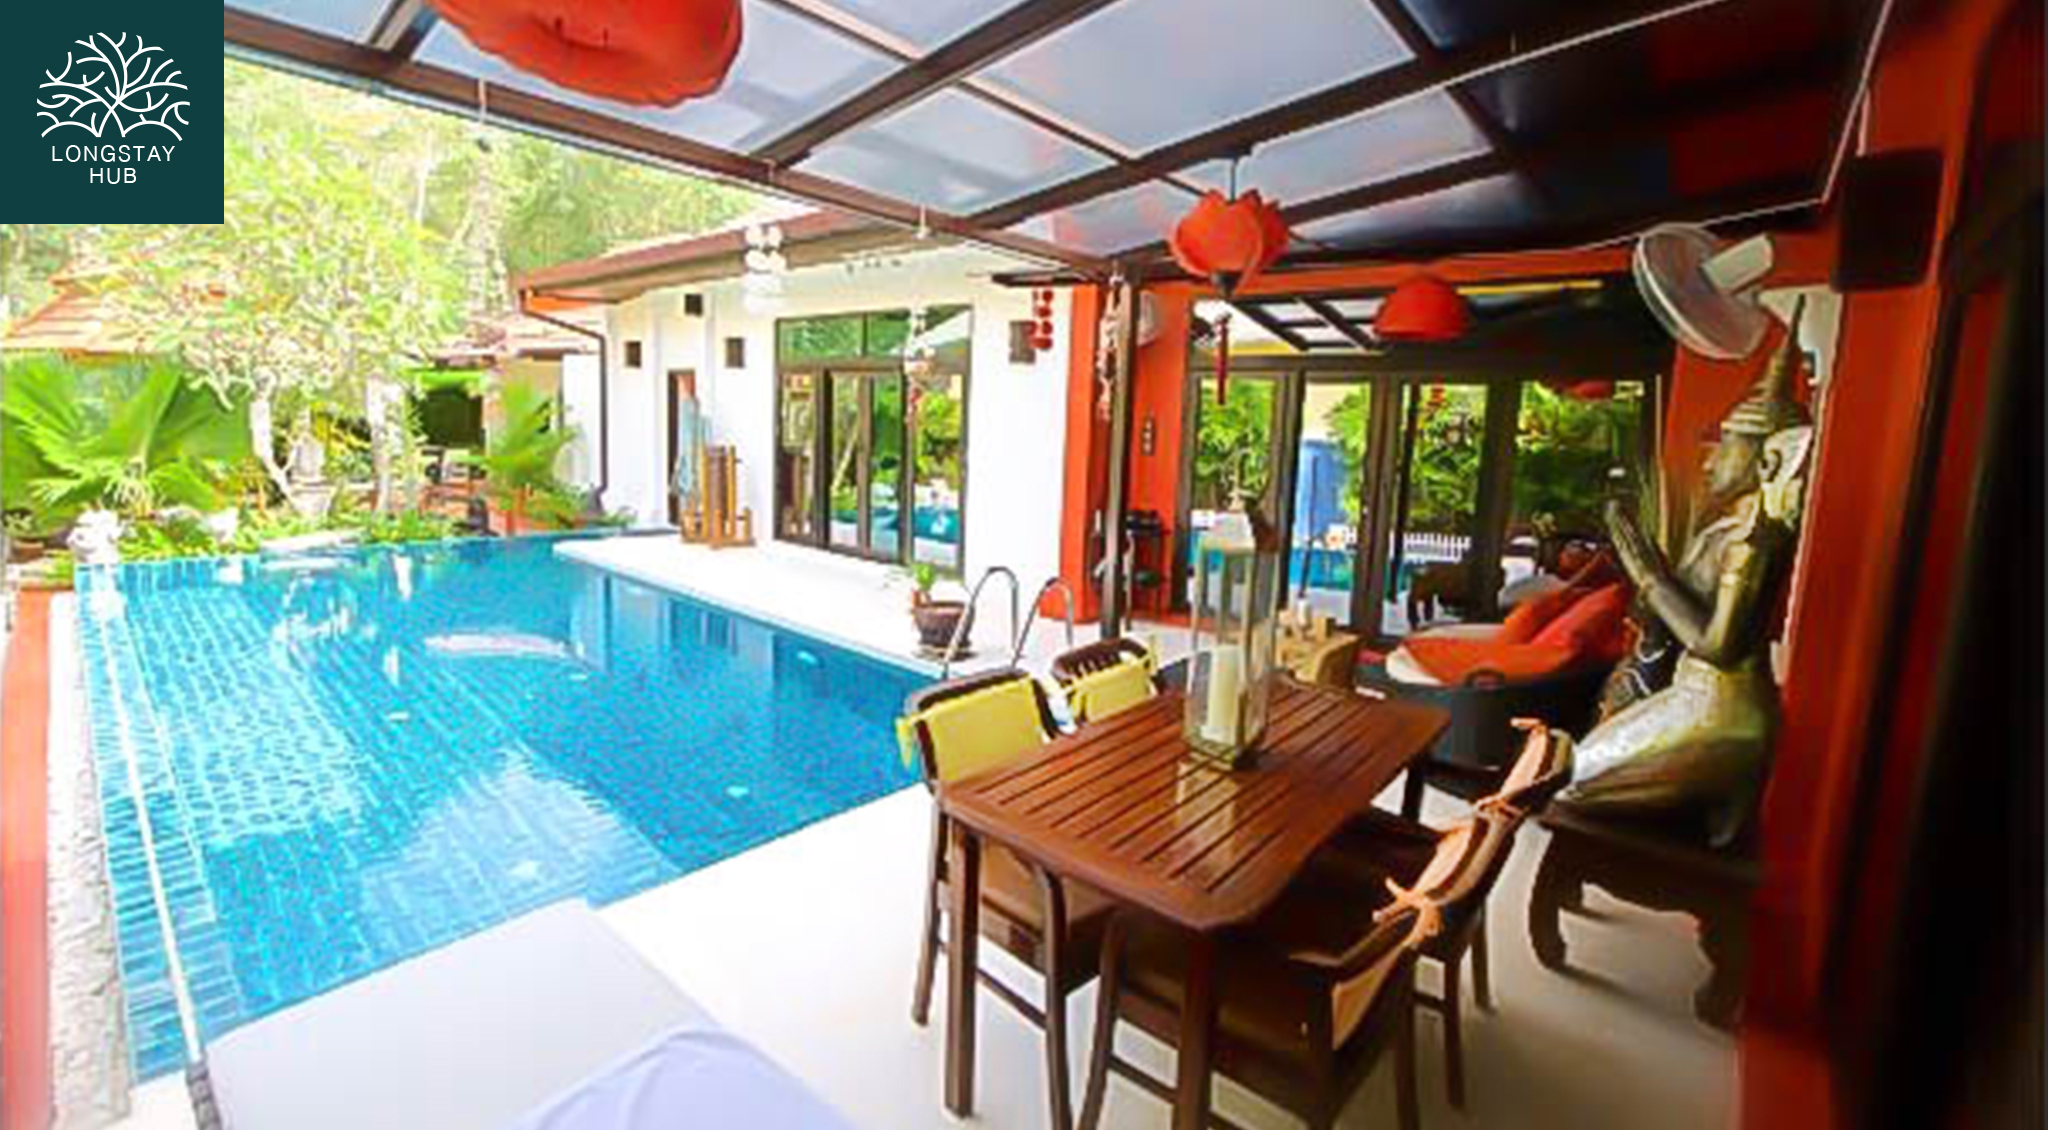 2 Bedroom Wayukita Pool Villa in Phuket,Thailand